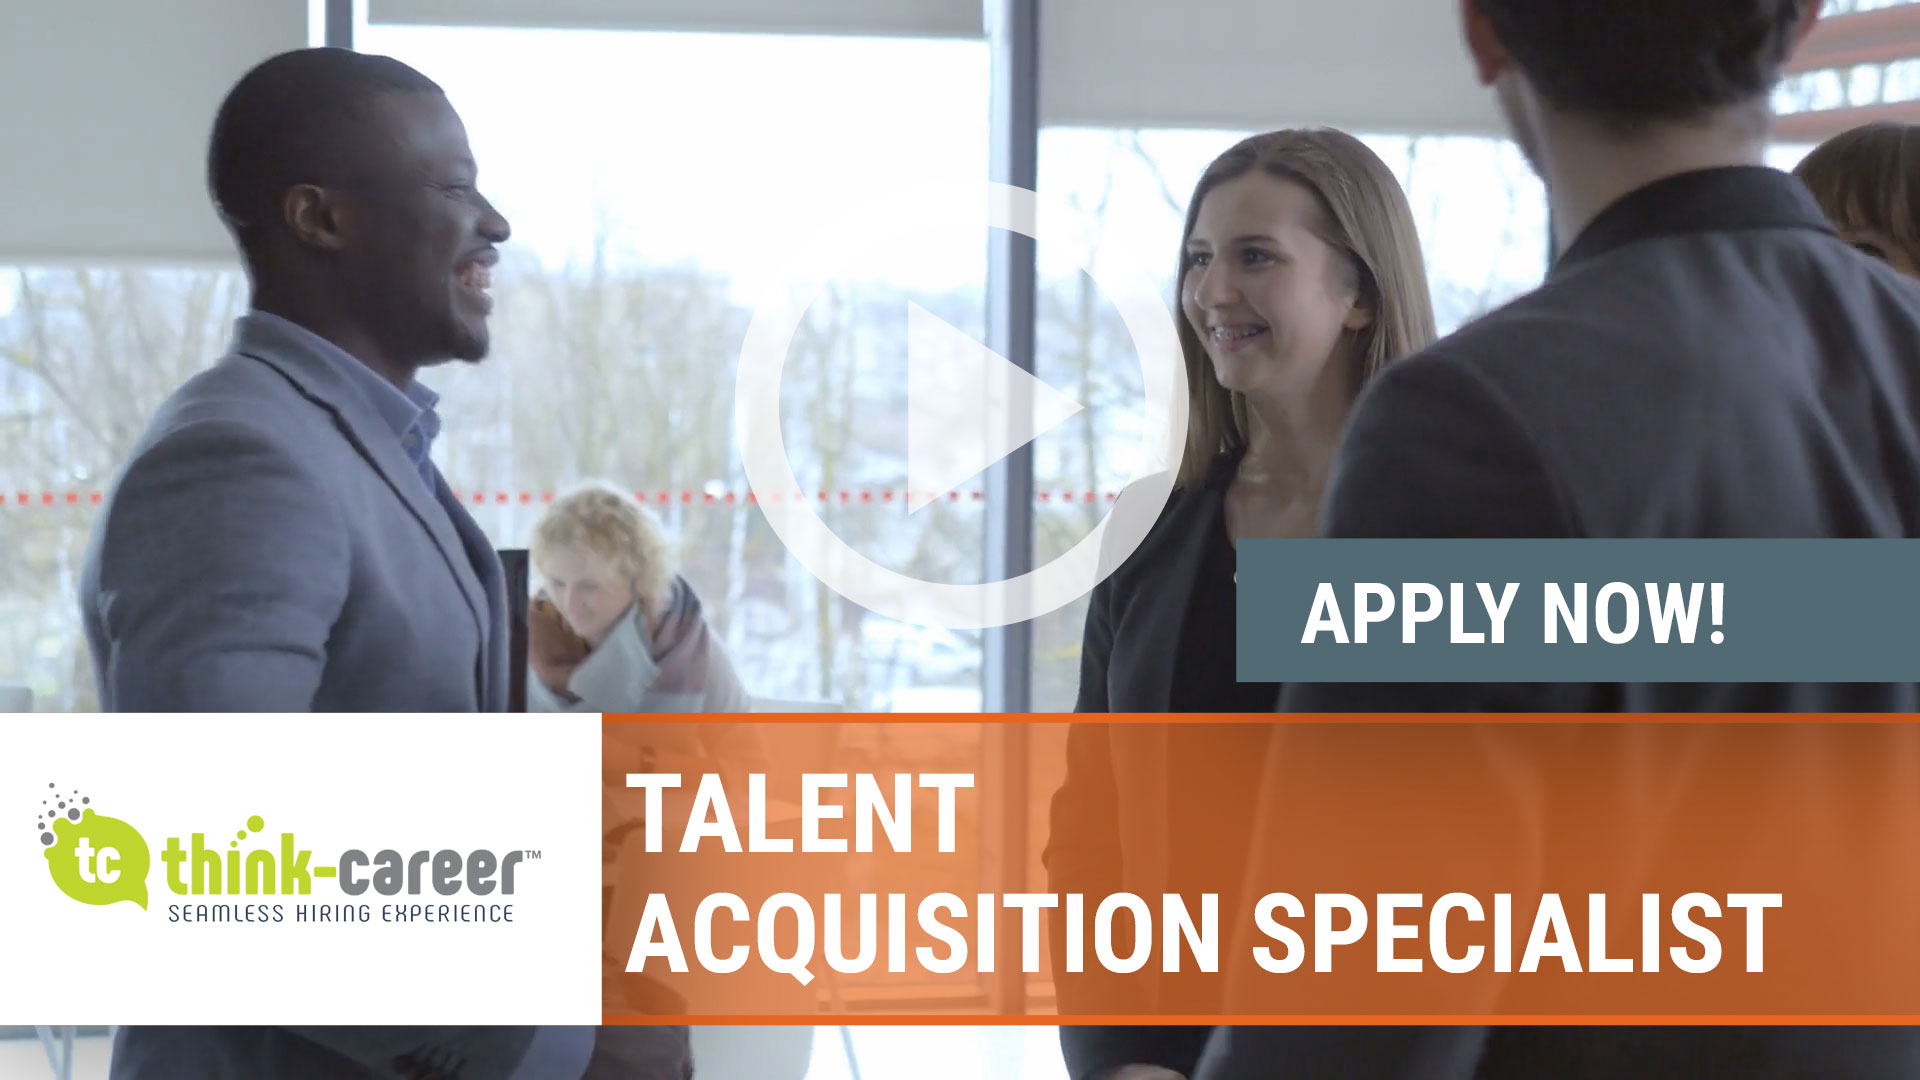 Watch our careers video for available job opening Talent Acquisition Specialist in Fourways, Johannesburg, South Africa